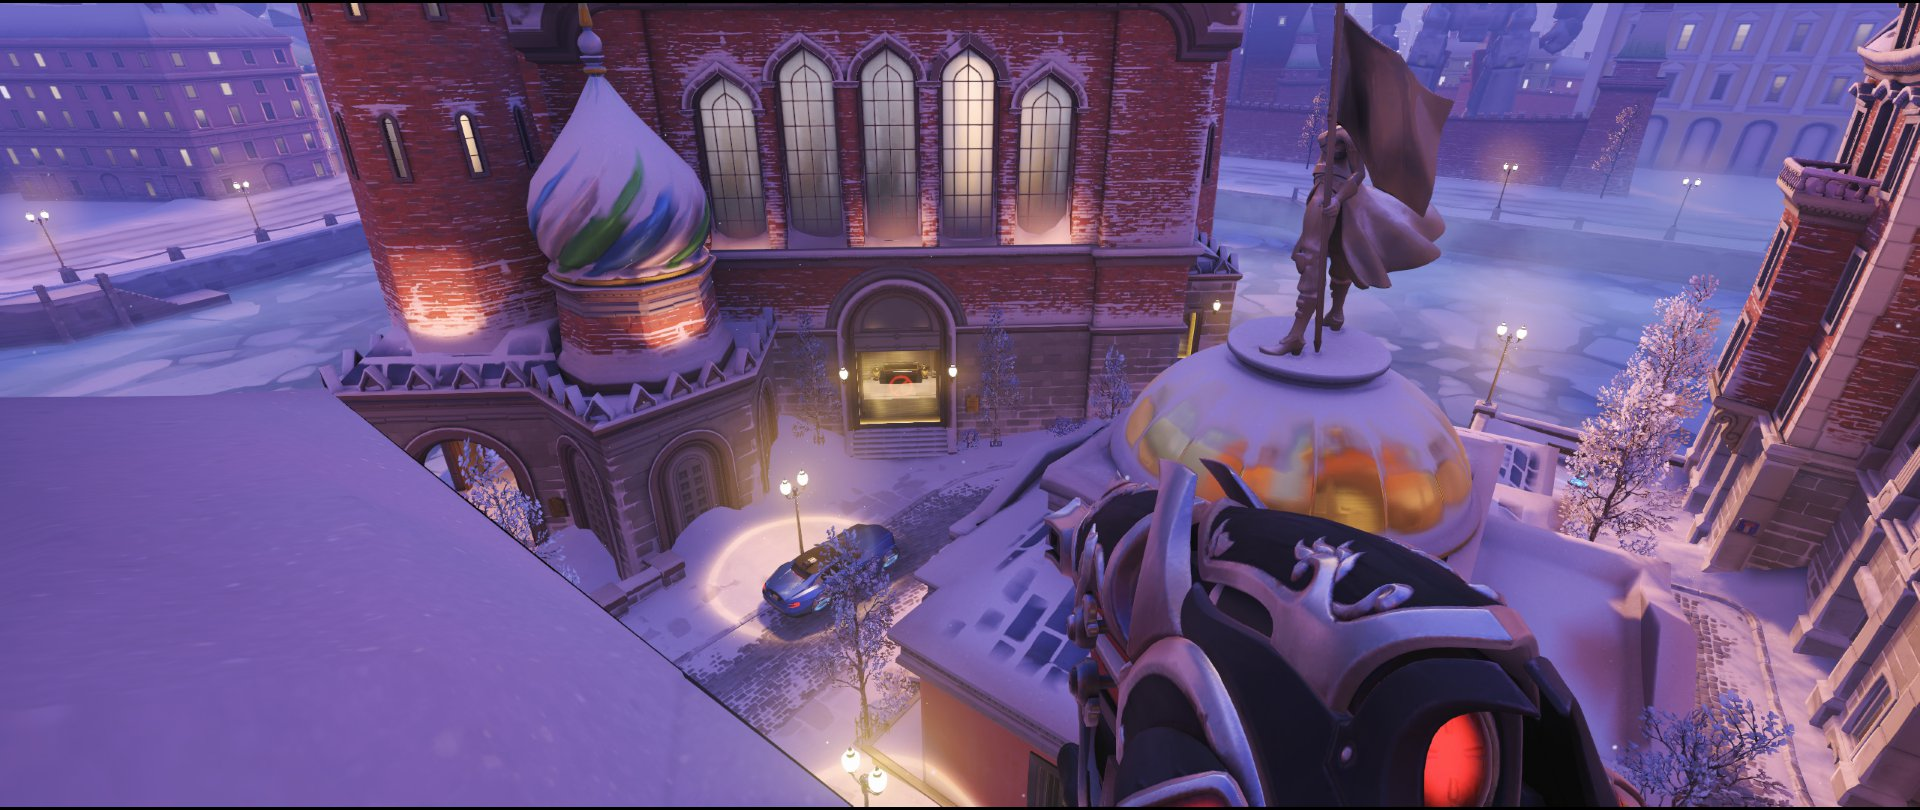 Manor high ground view defense sniping spot Widowmaker Volskaya Industries Overwatch.jpg